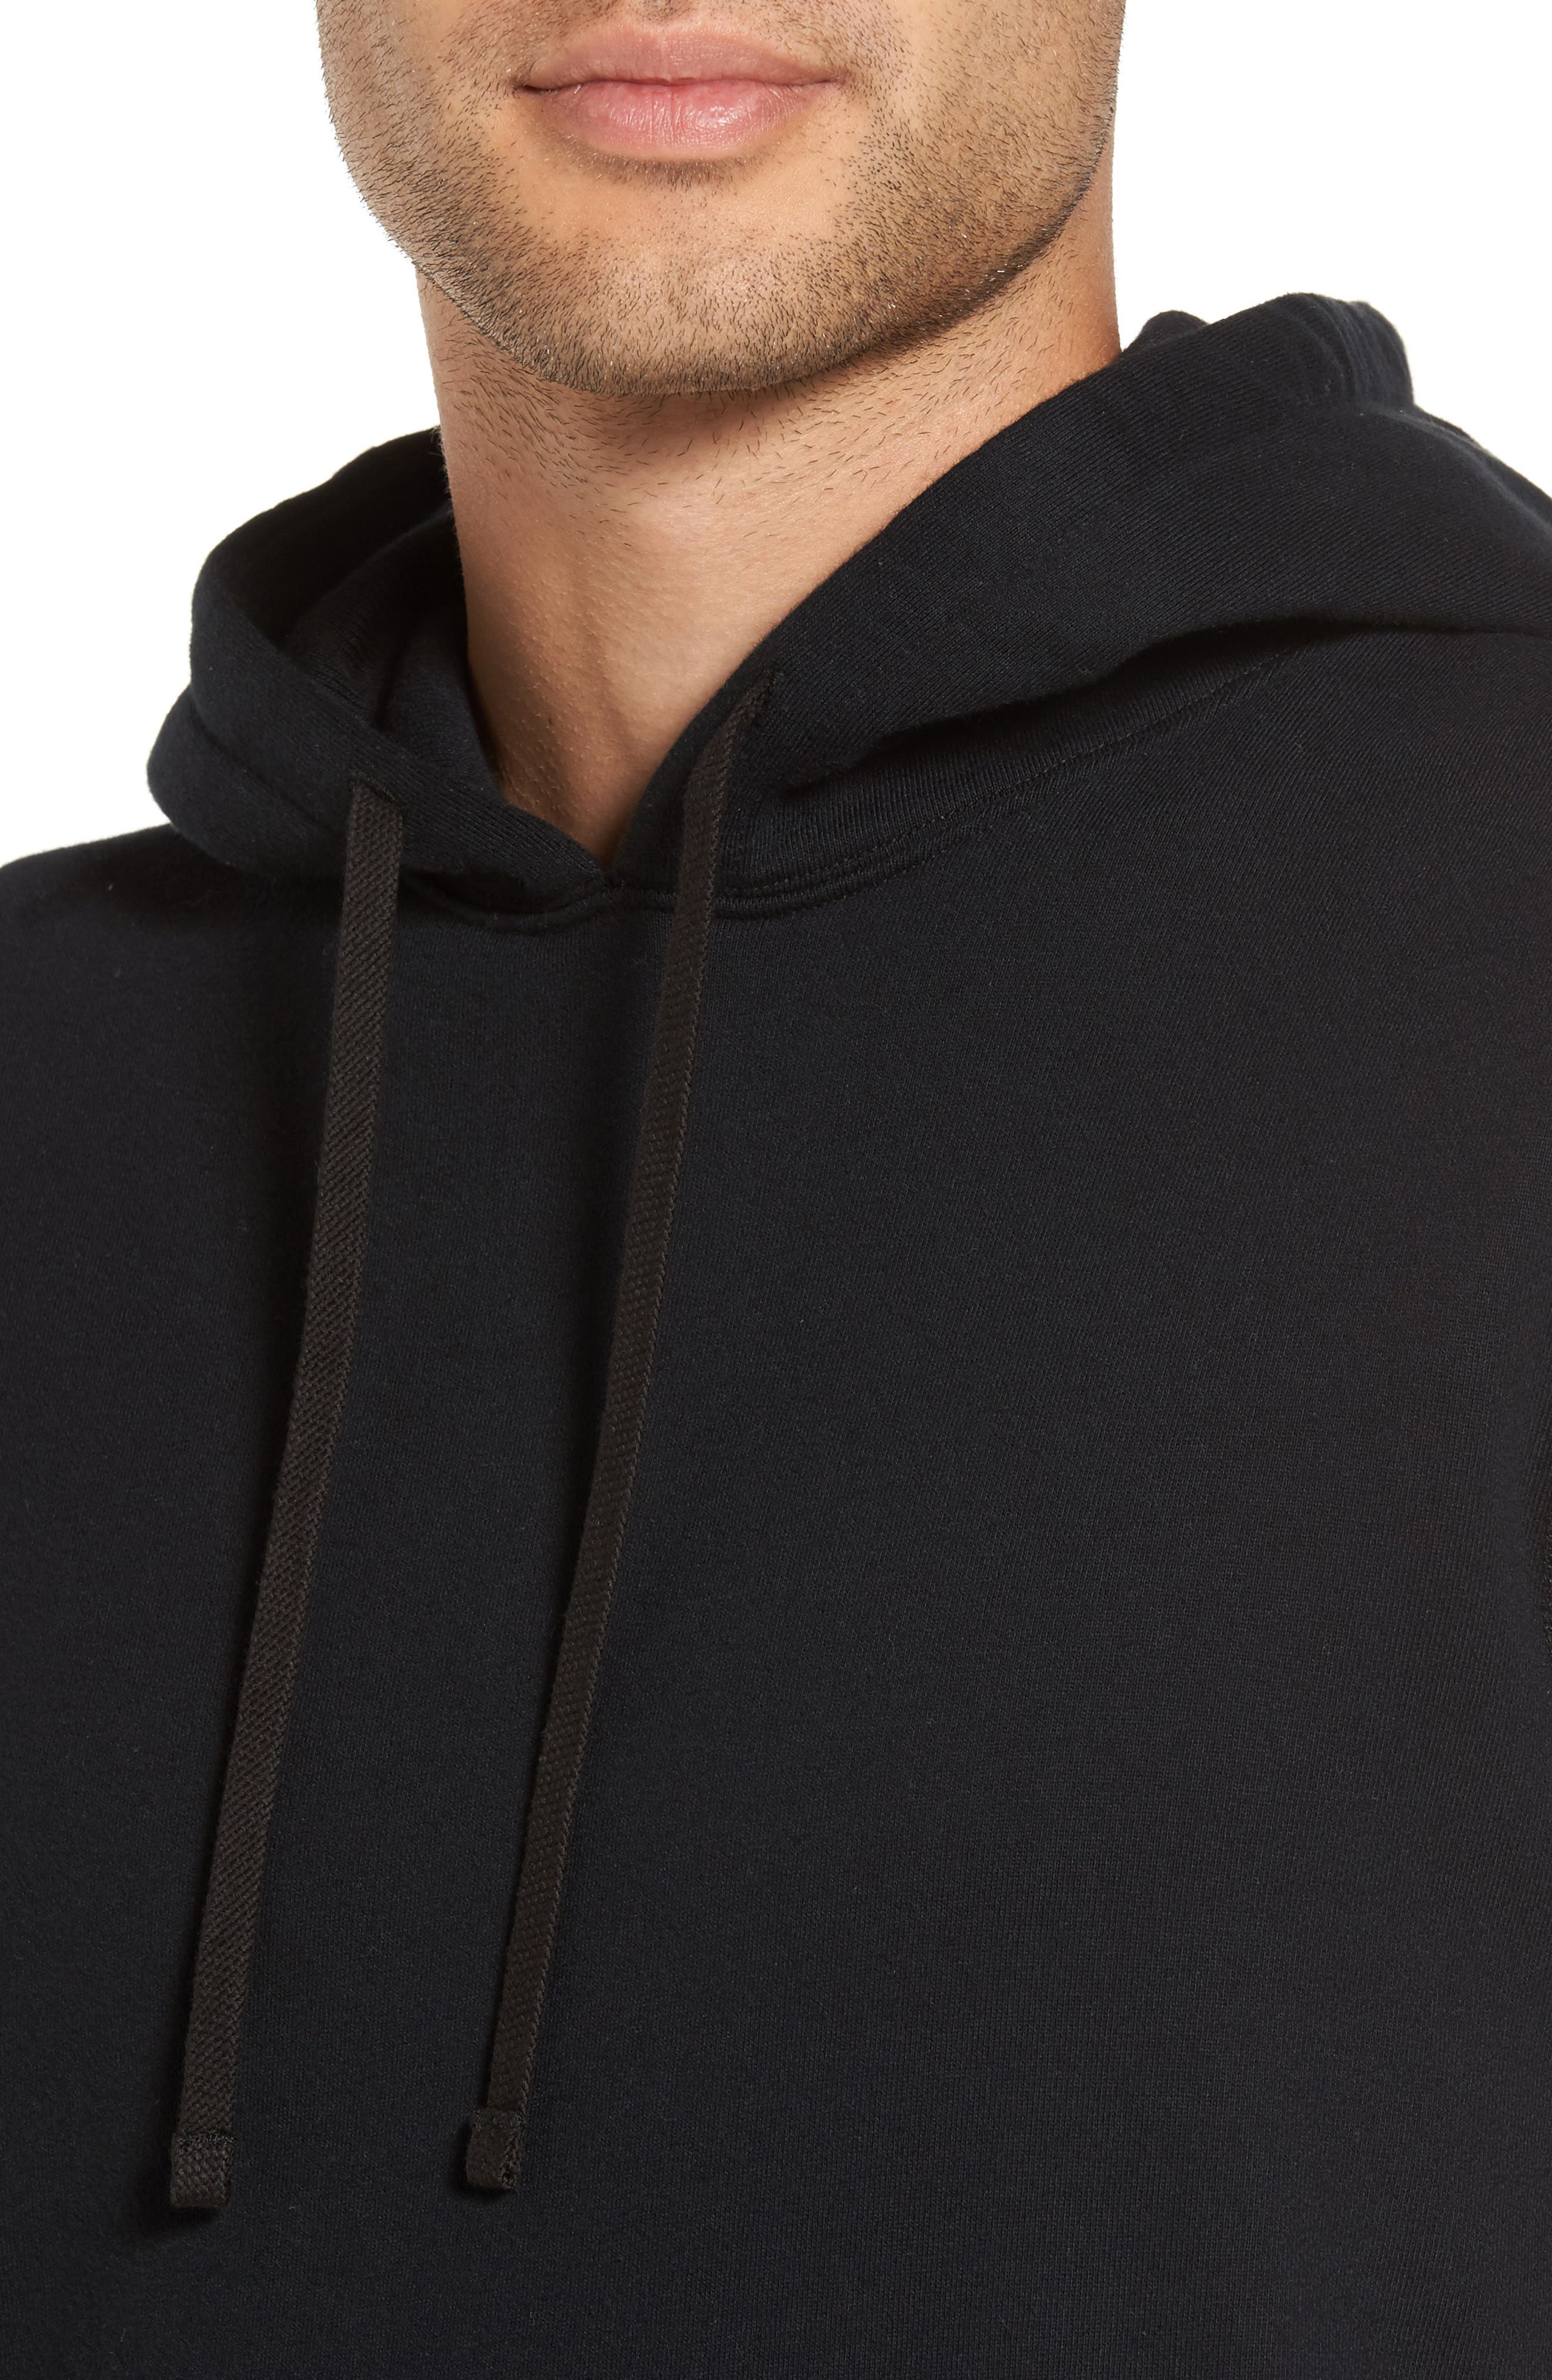 French Terry Hoodie,                             Alternate thumbnail 4, color,                             Black